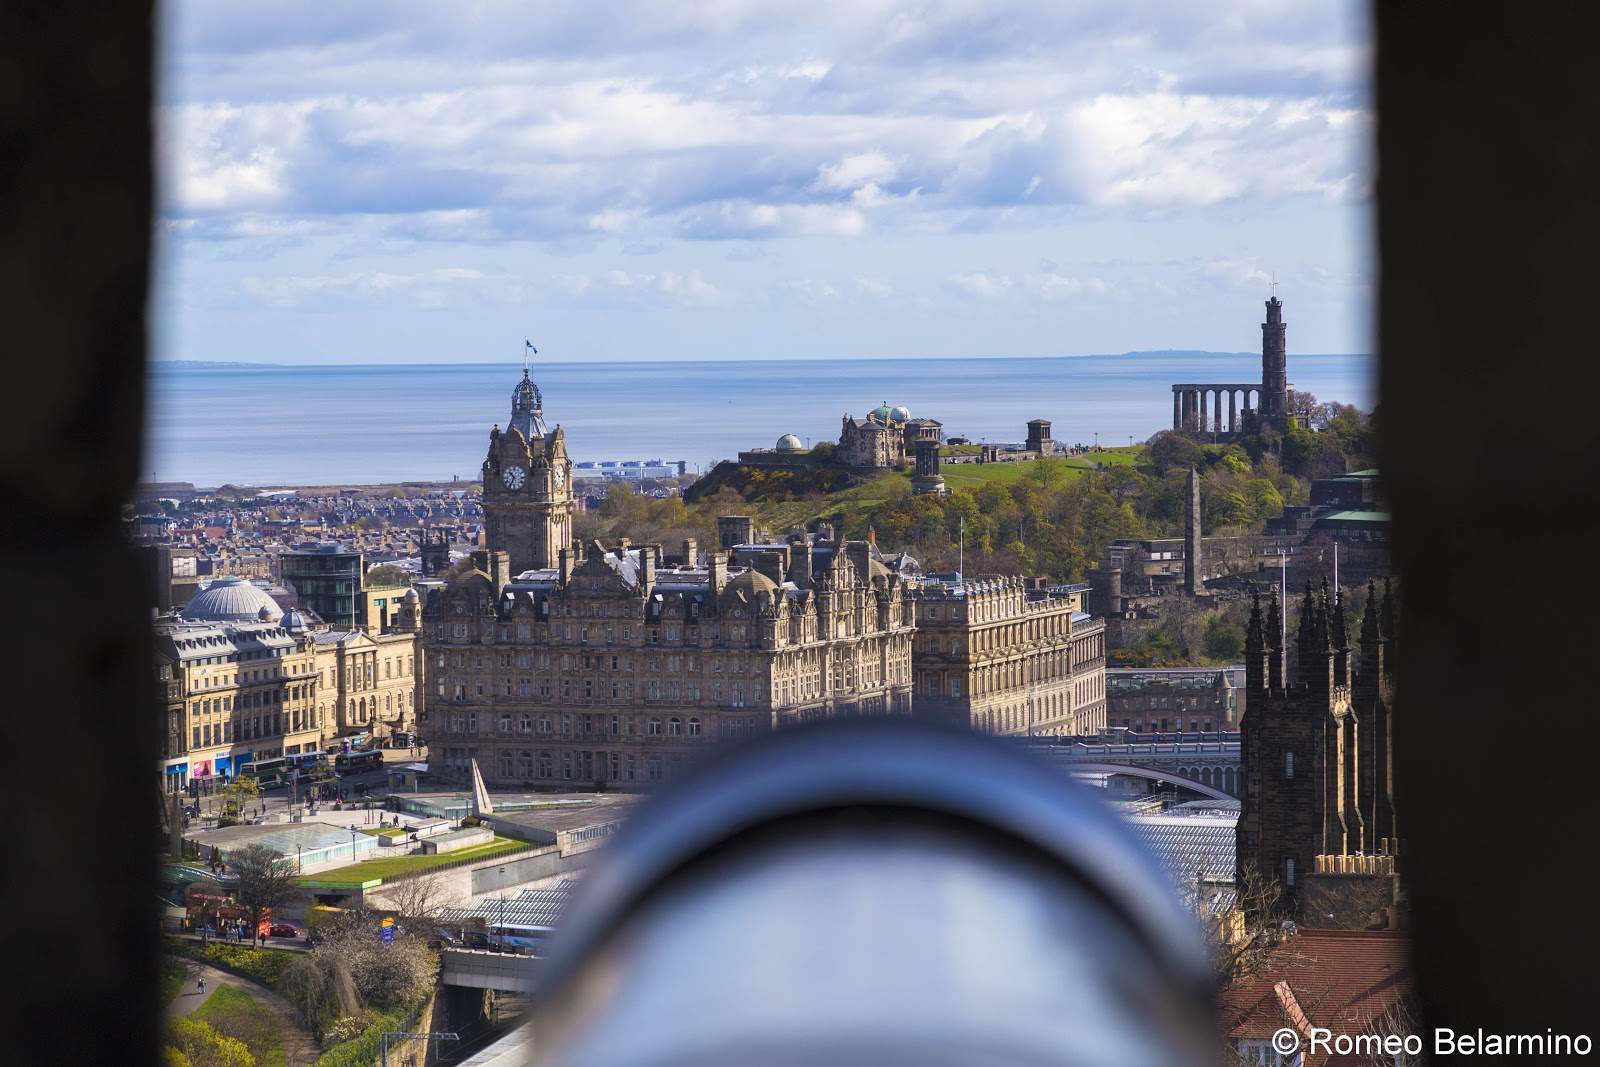 10 of the best castles in scotland for a road trip for Travel to edinburgh scotland